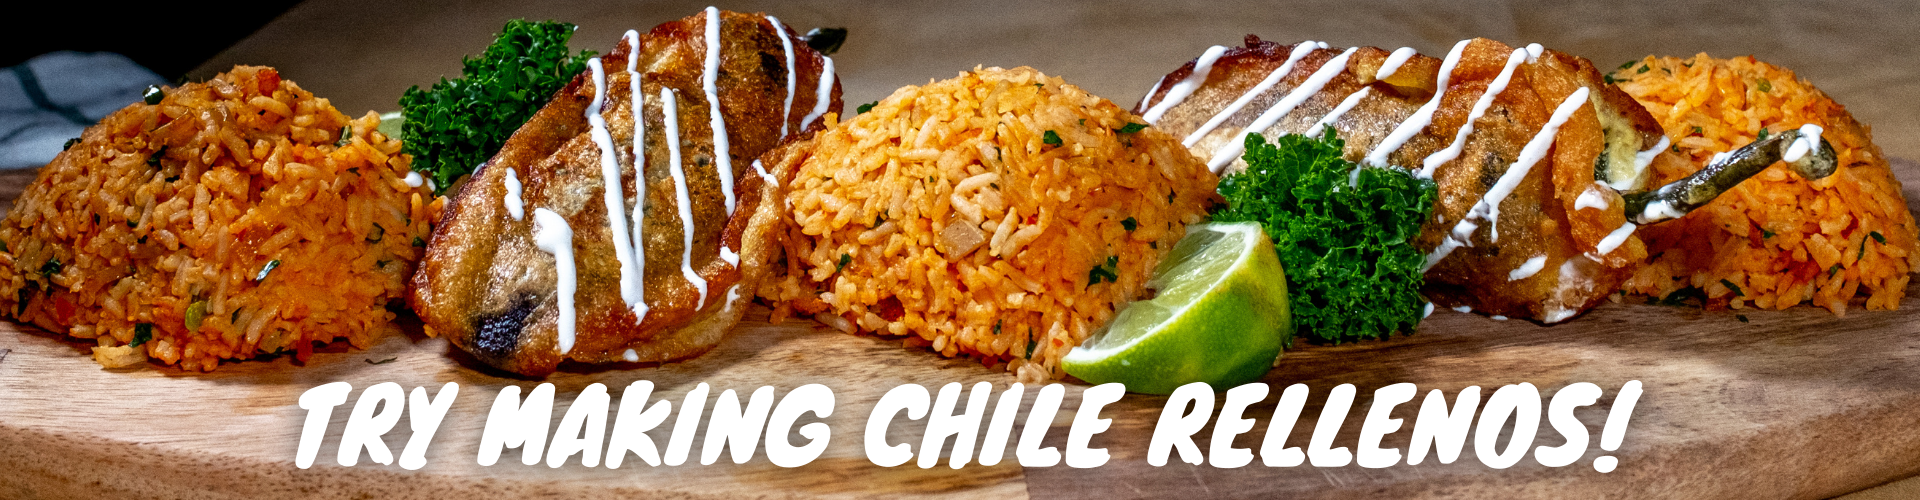 try making chile rellenos